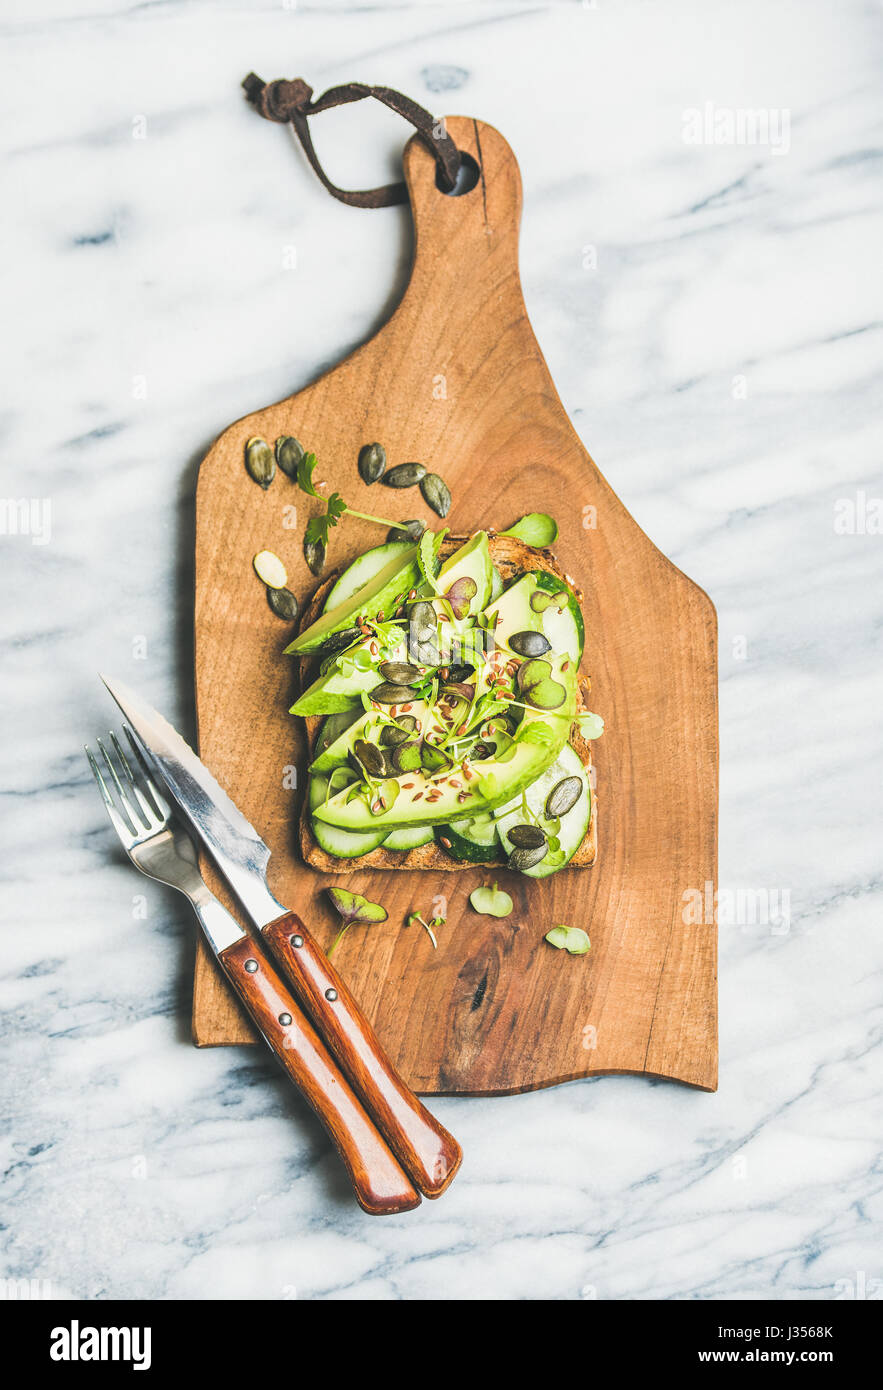 Healthy green veggie sandwich with avocado, cucumber, seeds, sporouts - Stock Image